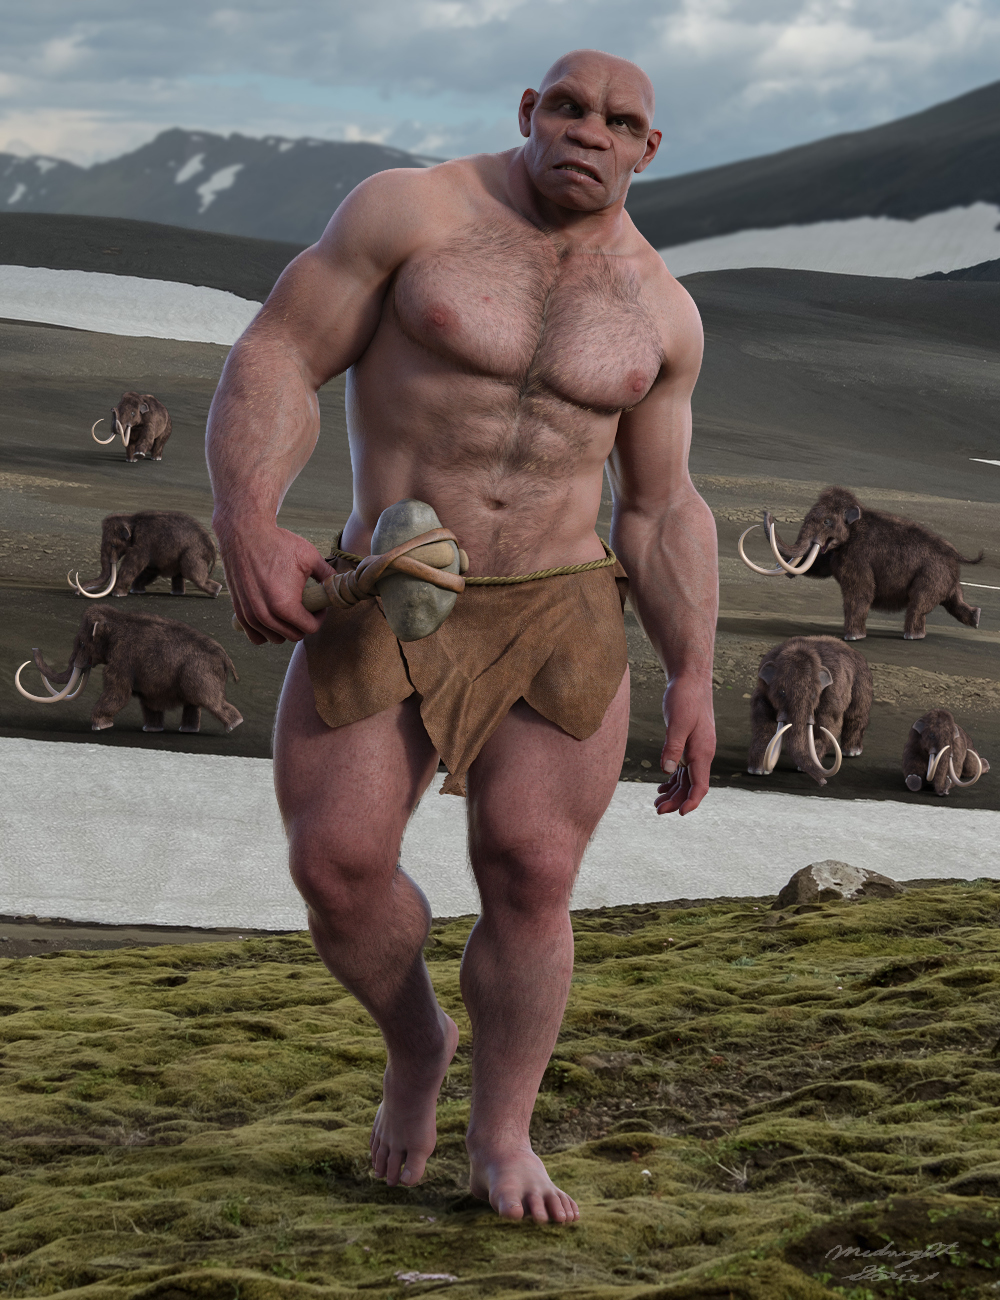 Neanderthal by midnight_stories